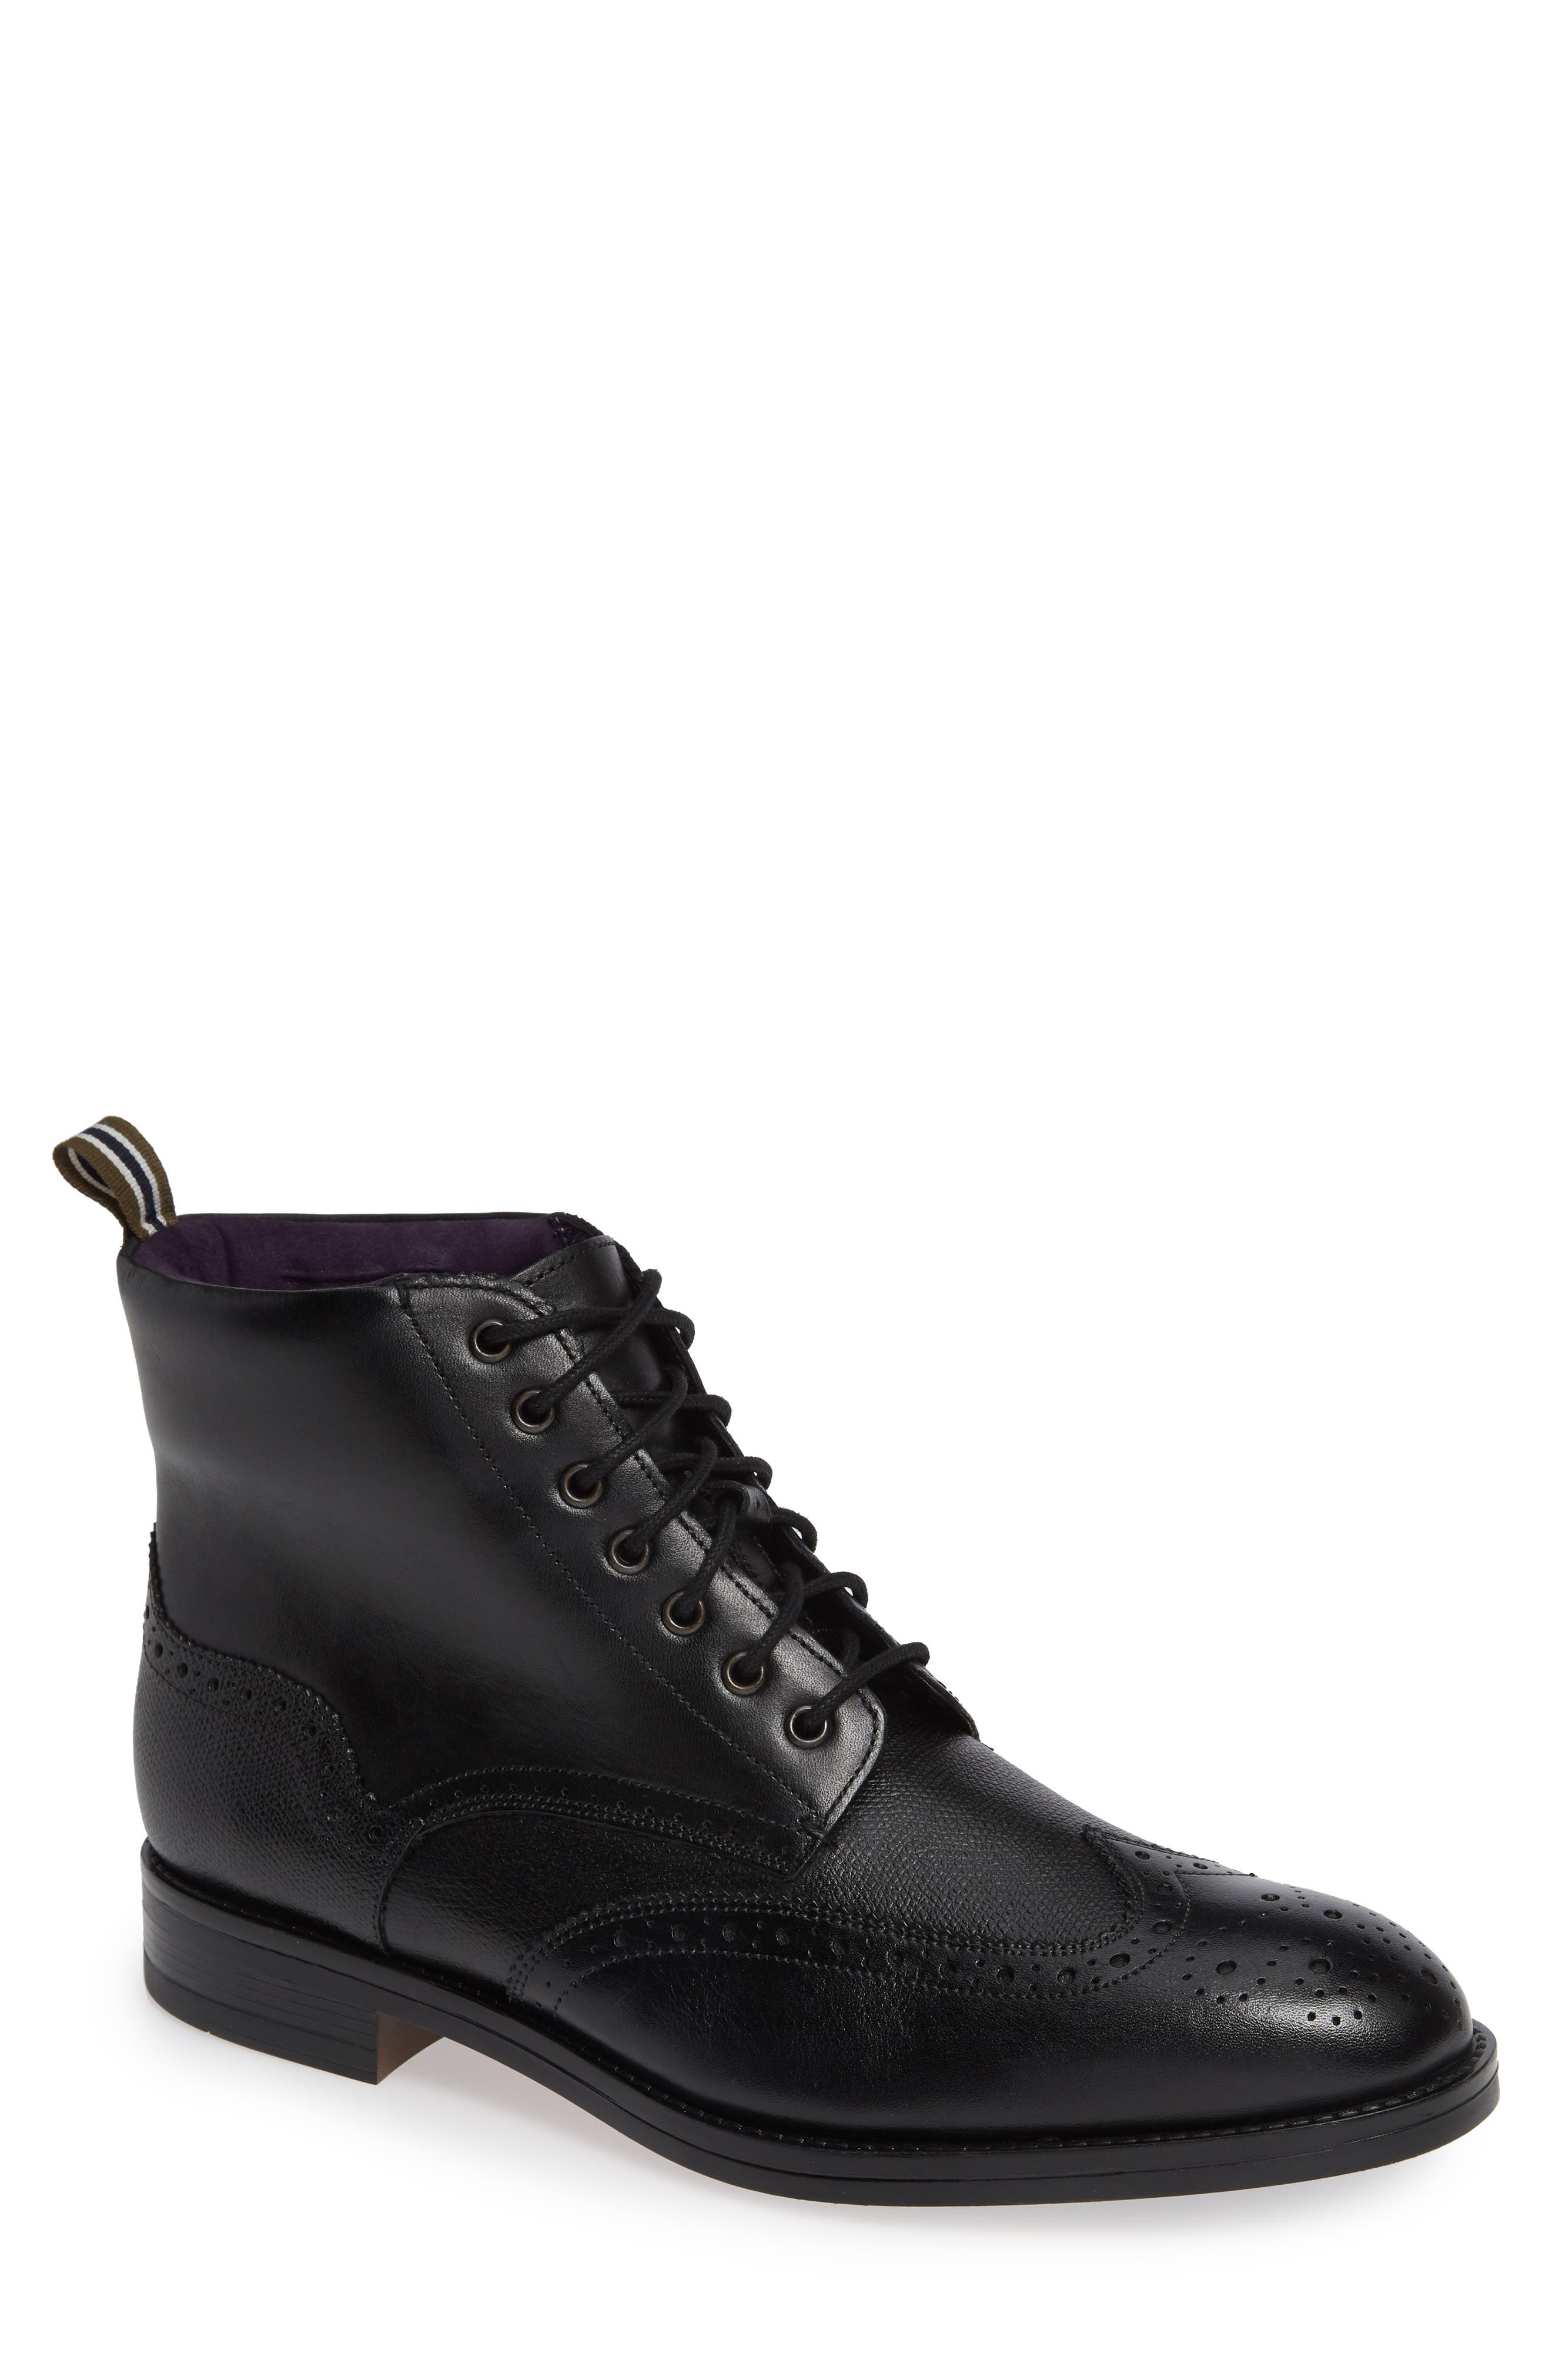 Twrens Wingtip Boot,                             Main thumbnail 1, color,                             BLACK LEATHER